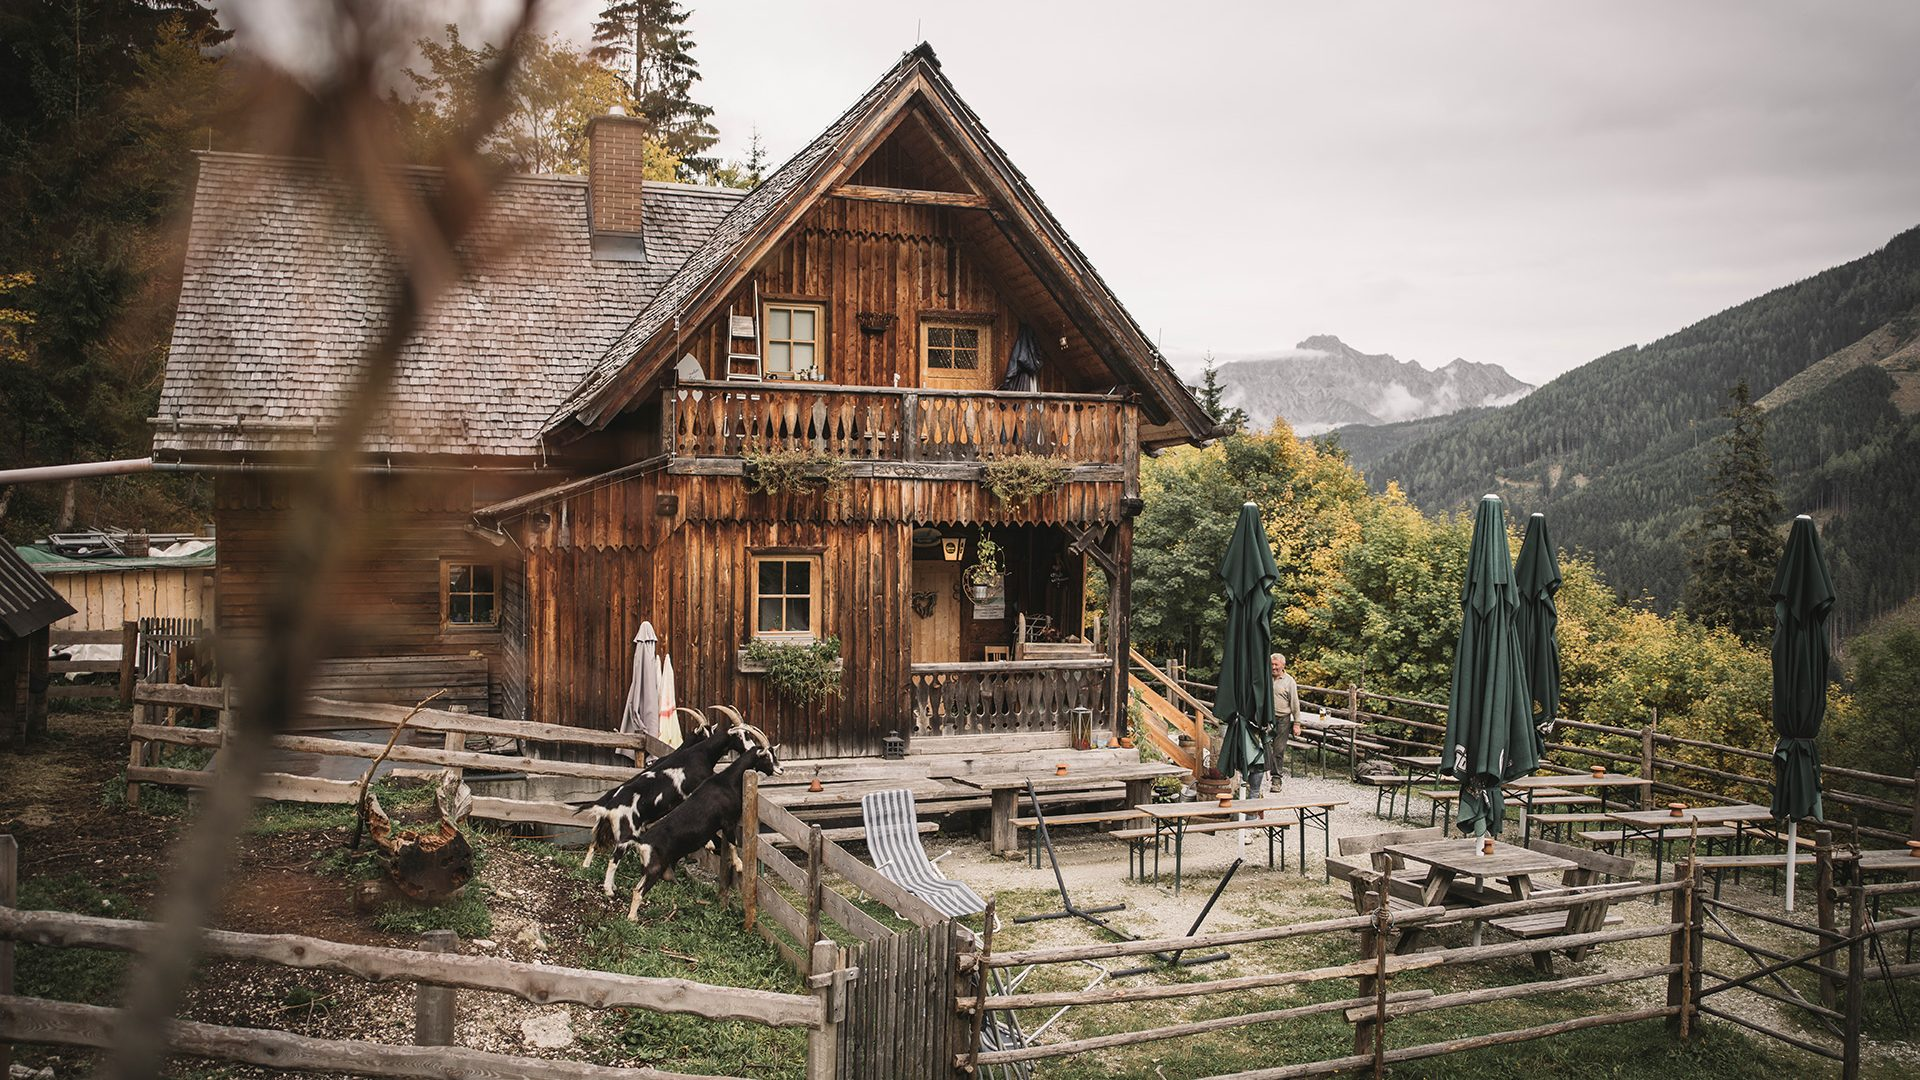 Ardning Alm Lodge The Gesuse in Styria 1920x1080